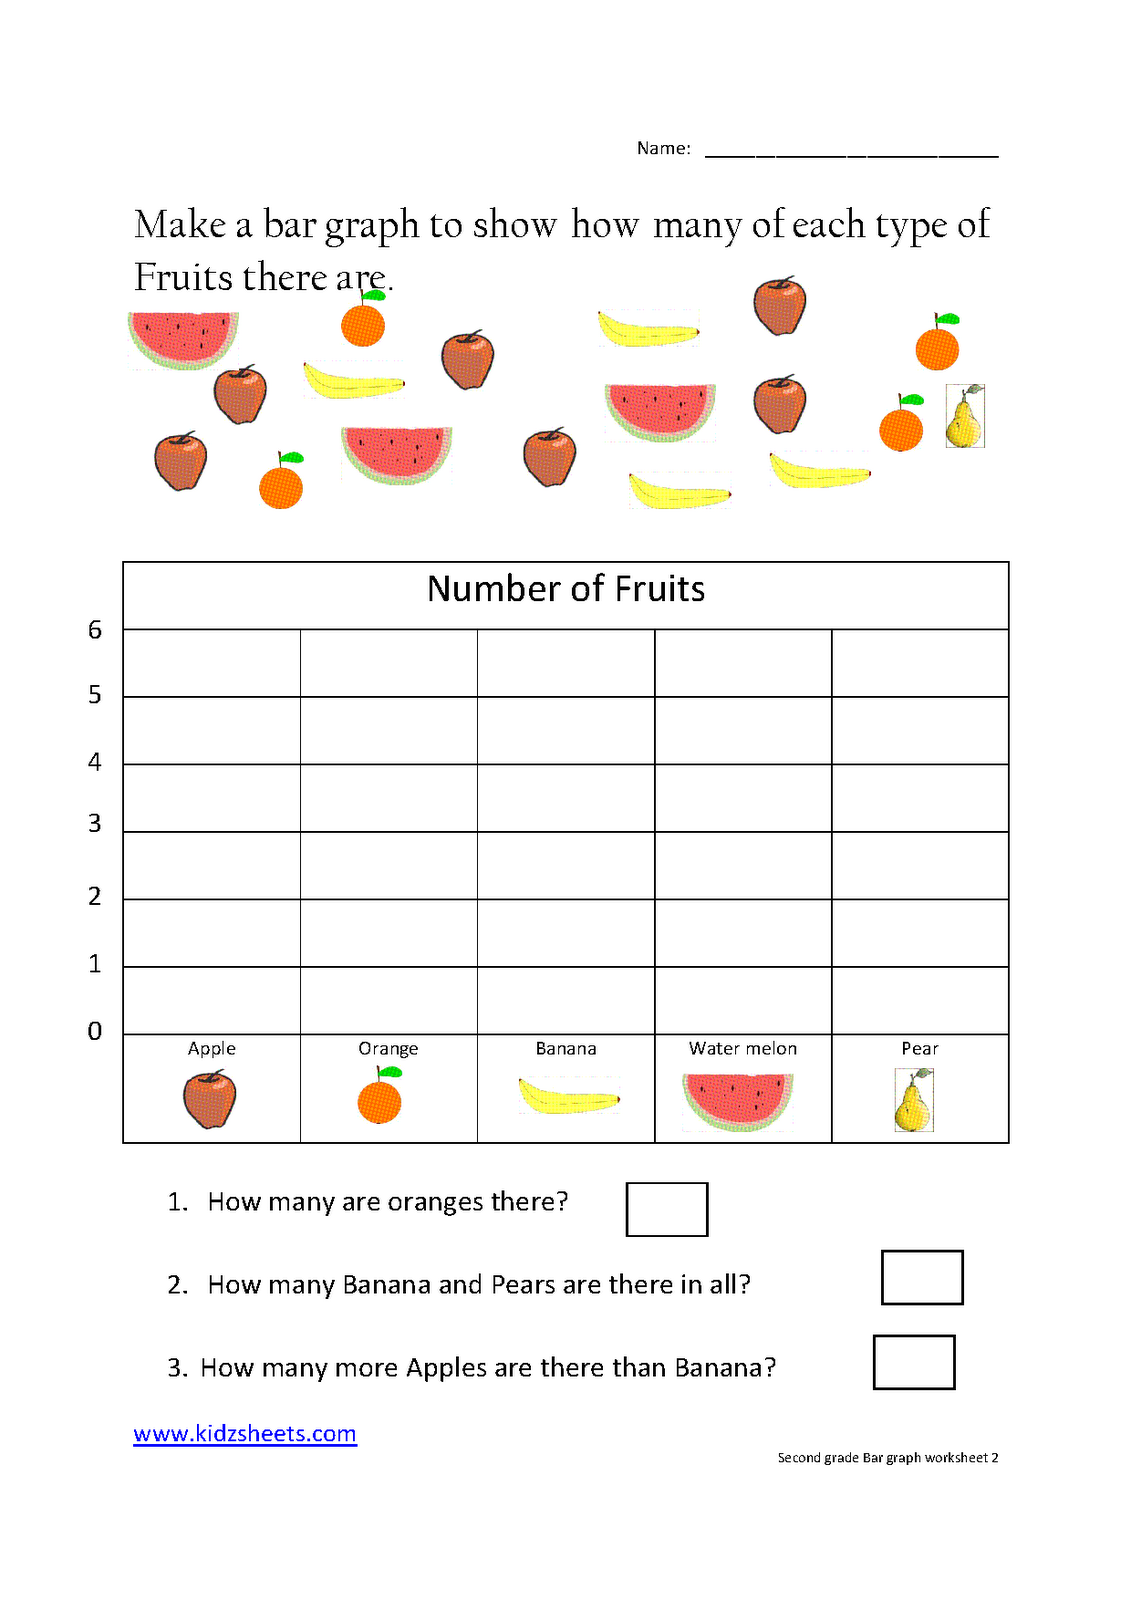 medium resolution of Kidz Worksheets: Second Grade Bar Graph Worksheet2